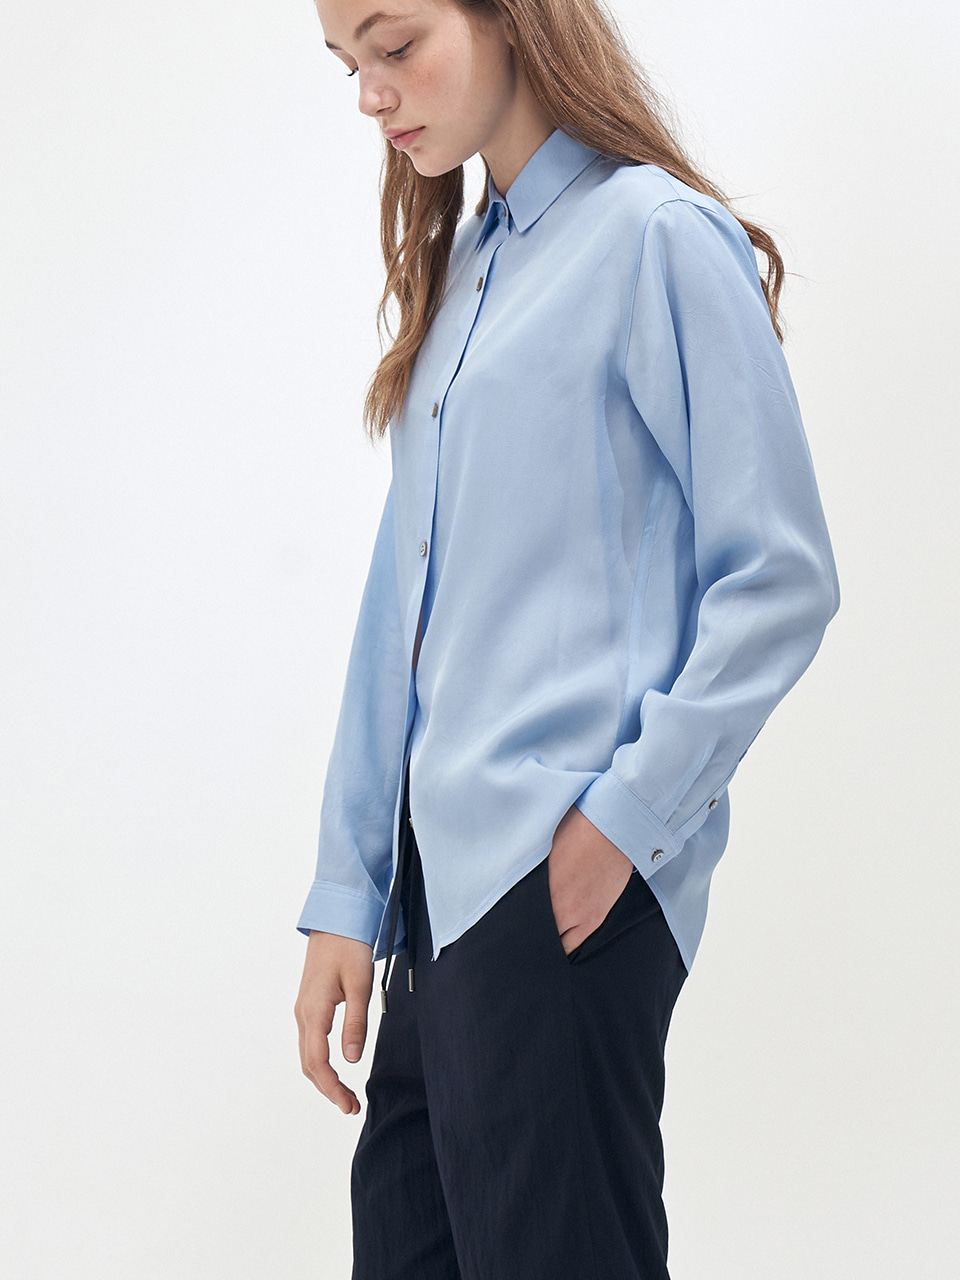 LONG SLEEVE SHERBET SHIRT_SKY BLUE